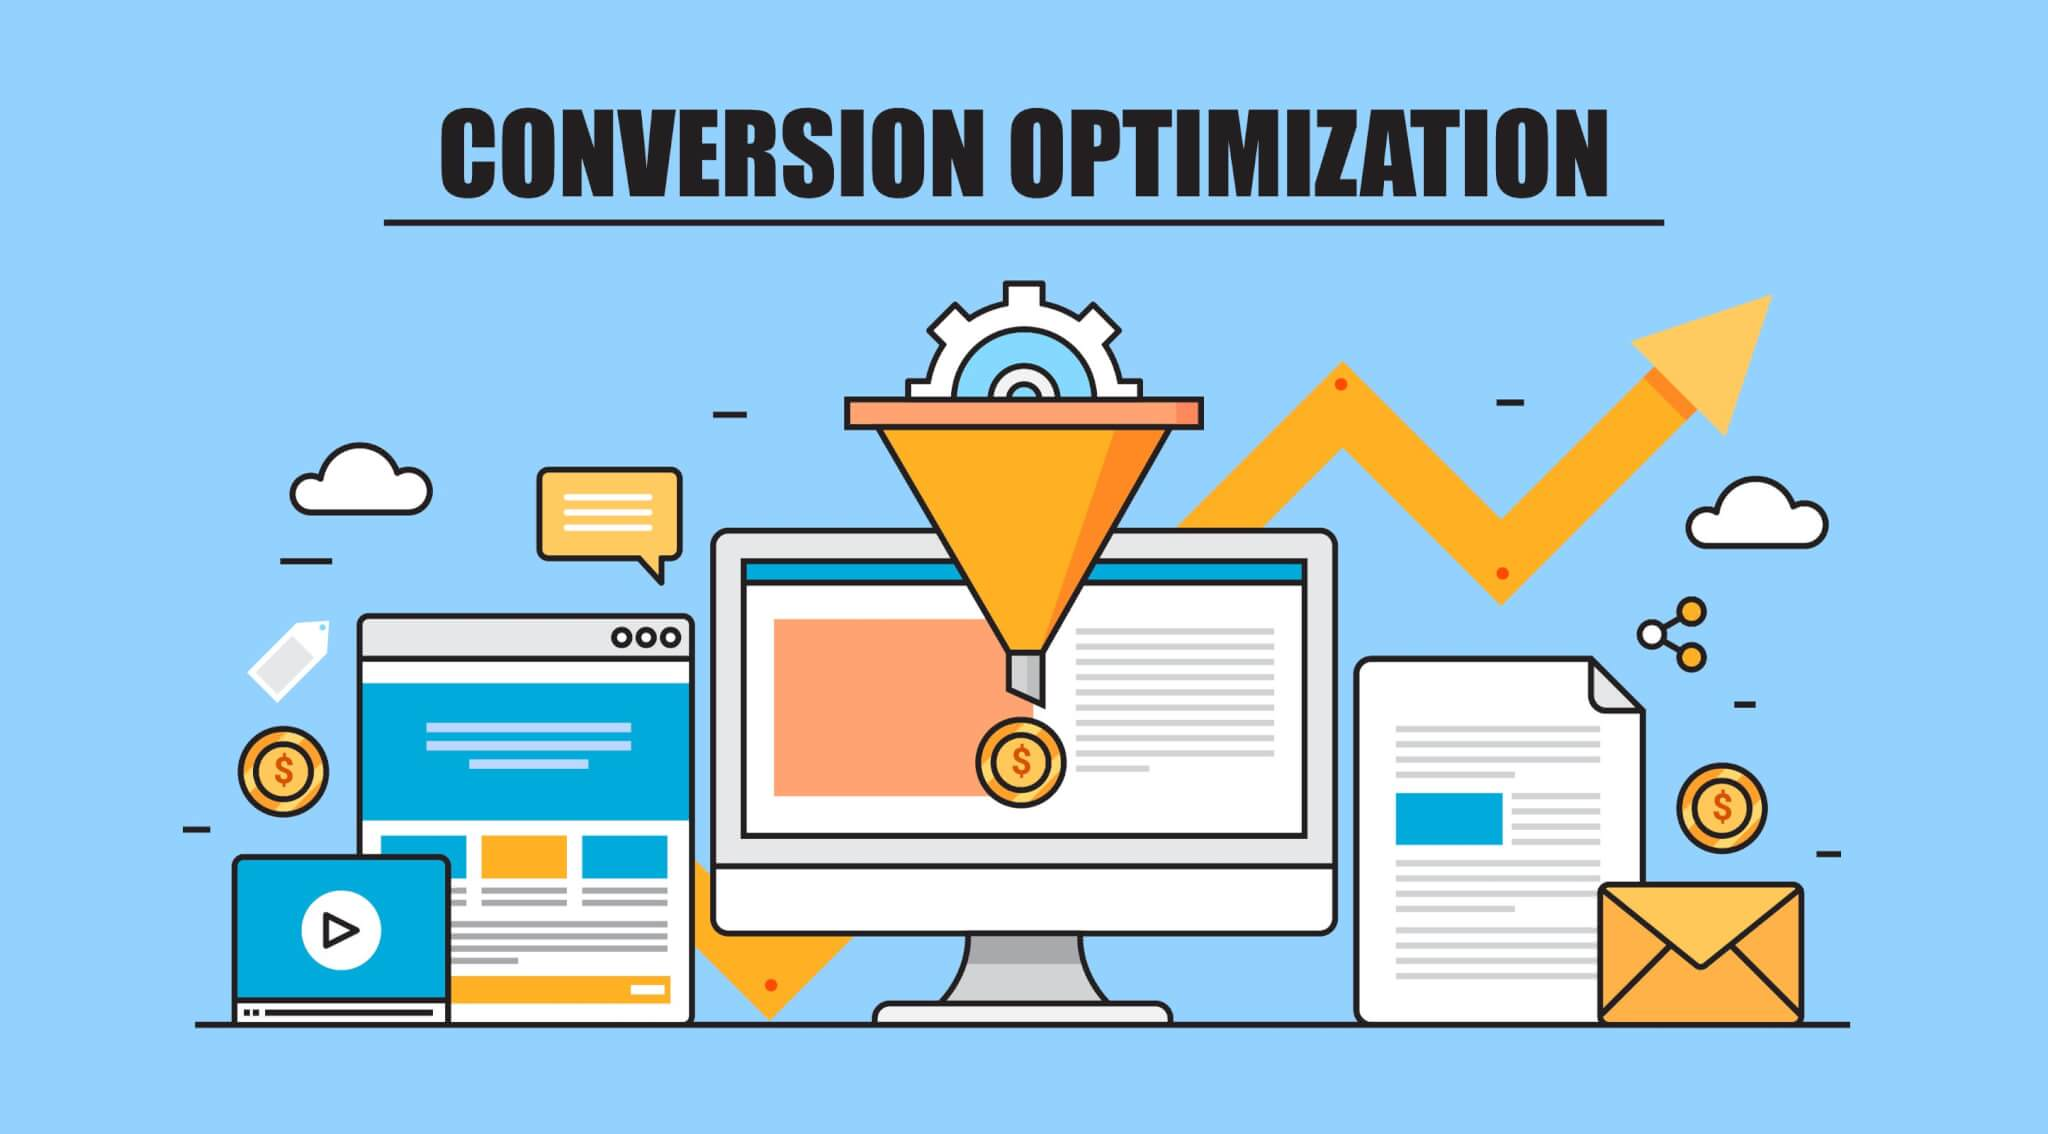 An image of the words Conversion Optimization